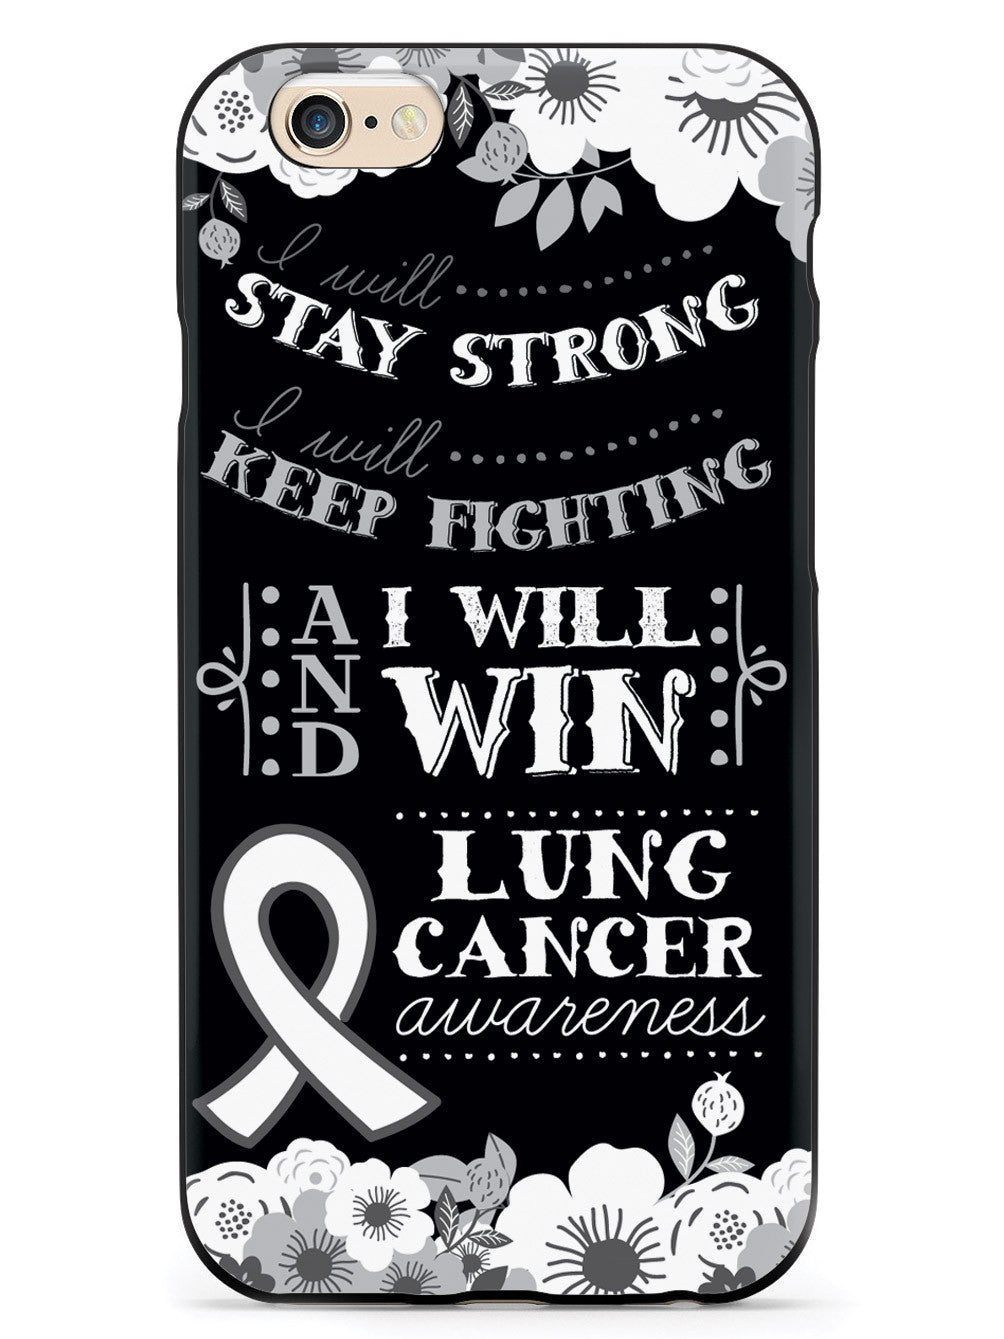 I Will Win - Lung Cancer Awareness Case